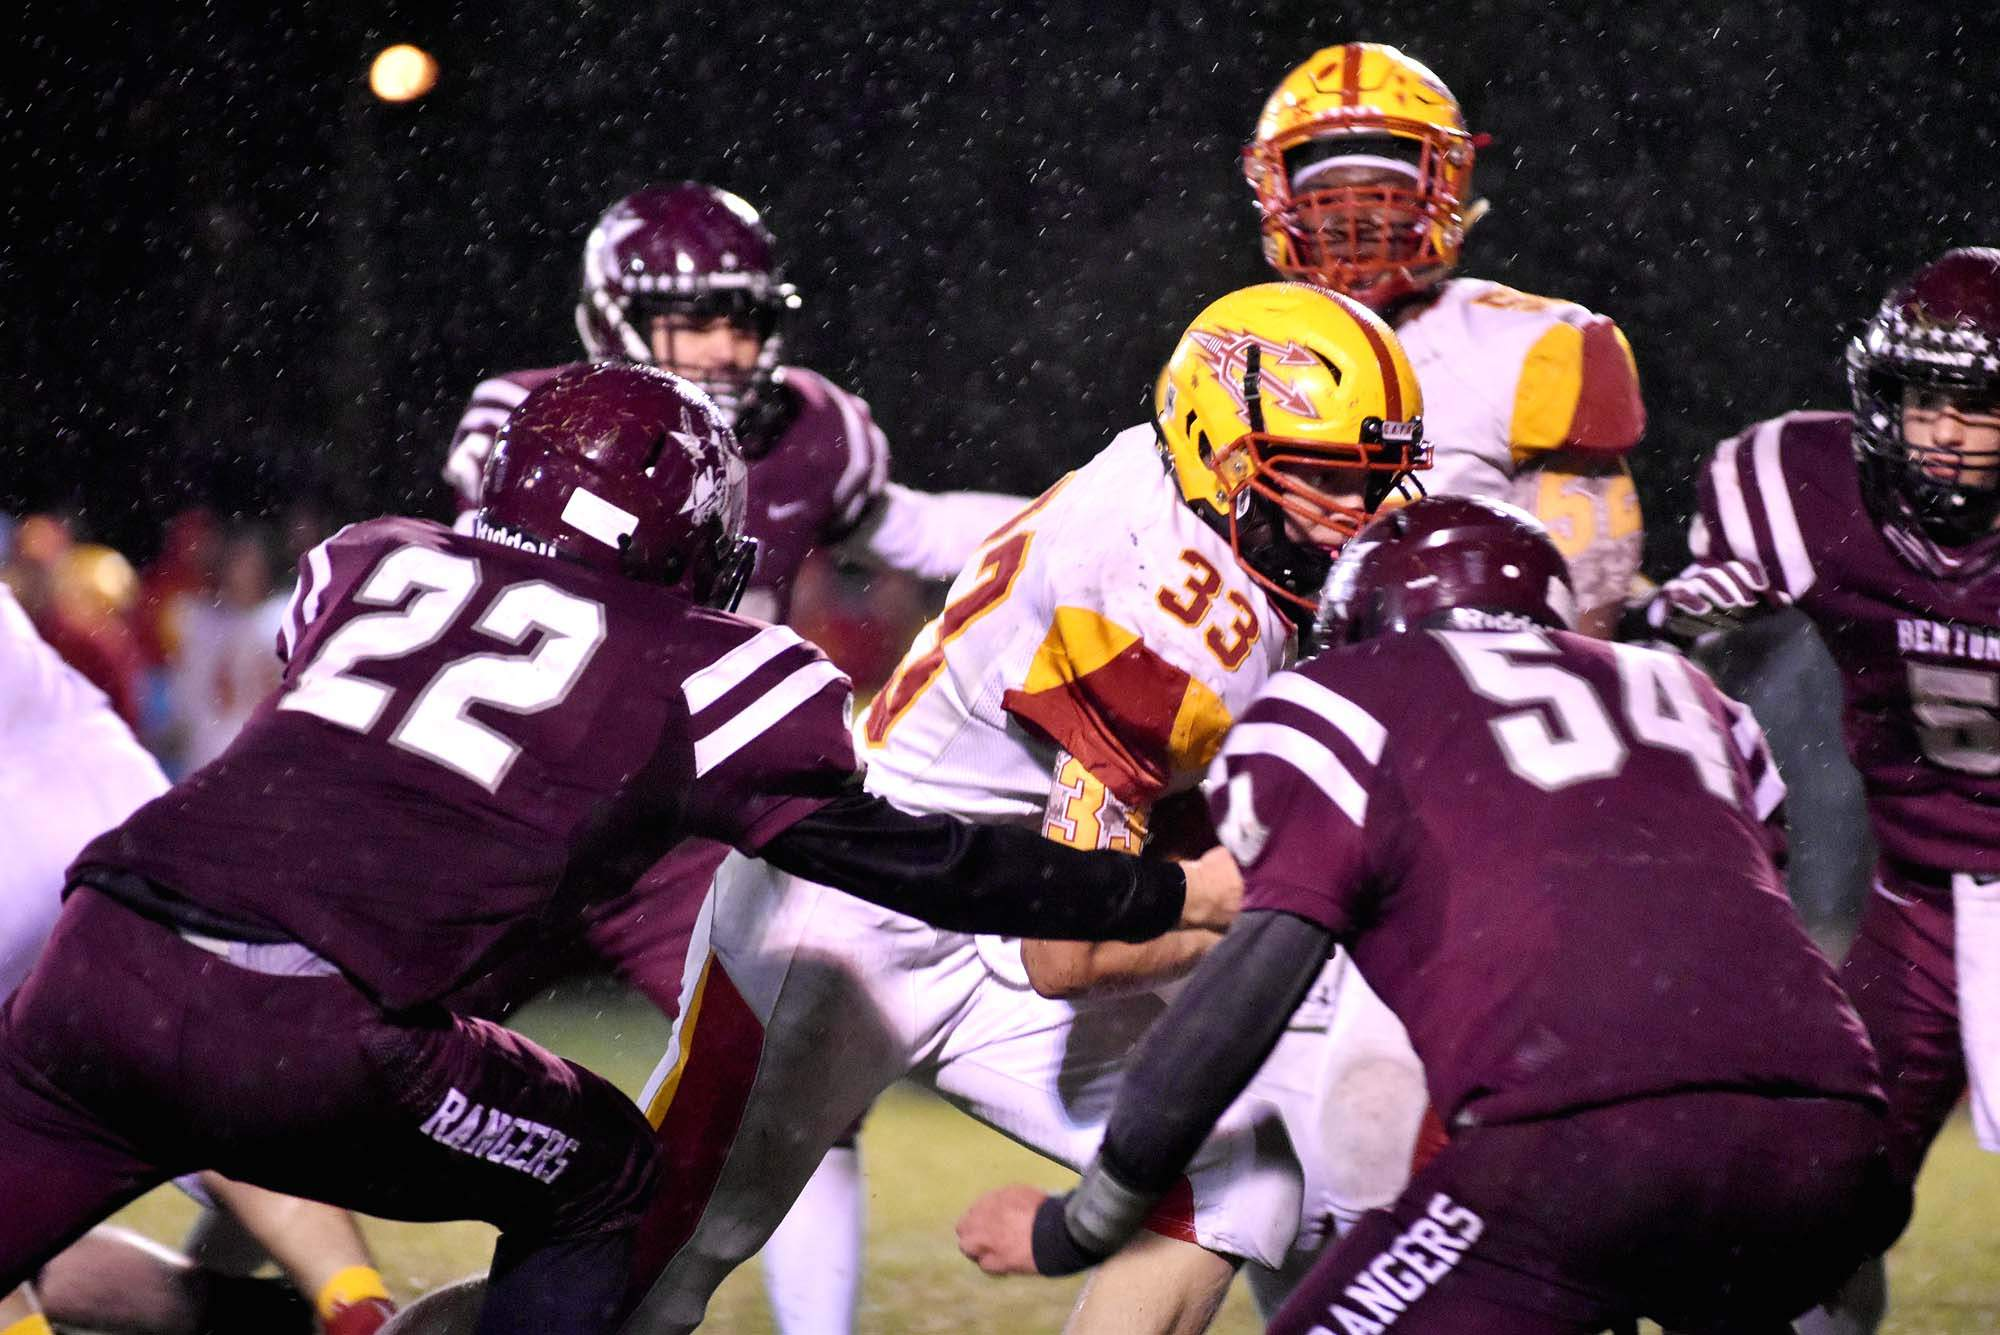 Murphysboro's Aiden McNitt runs up the middle and is met by Benton defenders Jadon Stark (22) and Logan Williams (54). McNitt ran for 68 yards, including an 18-yard touchdown.